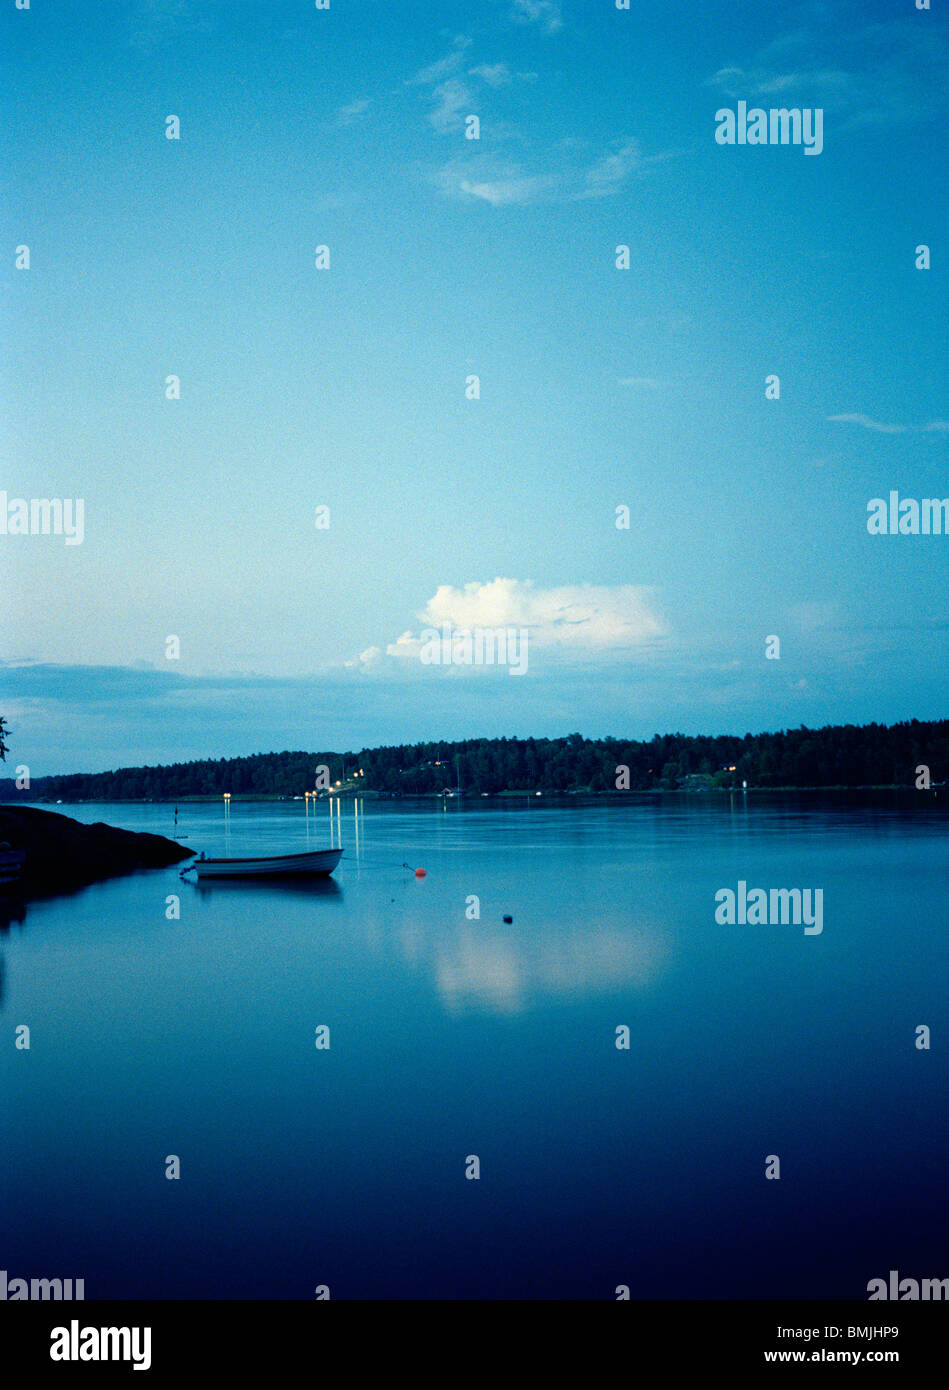 View of an archipelago in the evening, Sweden. - Stock Image